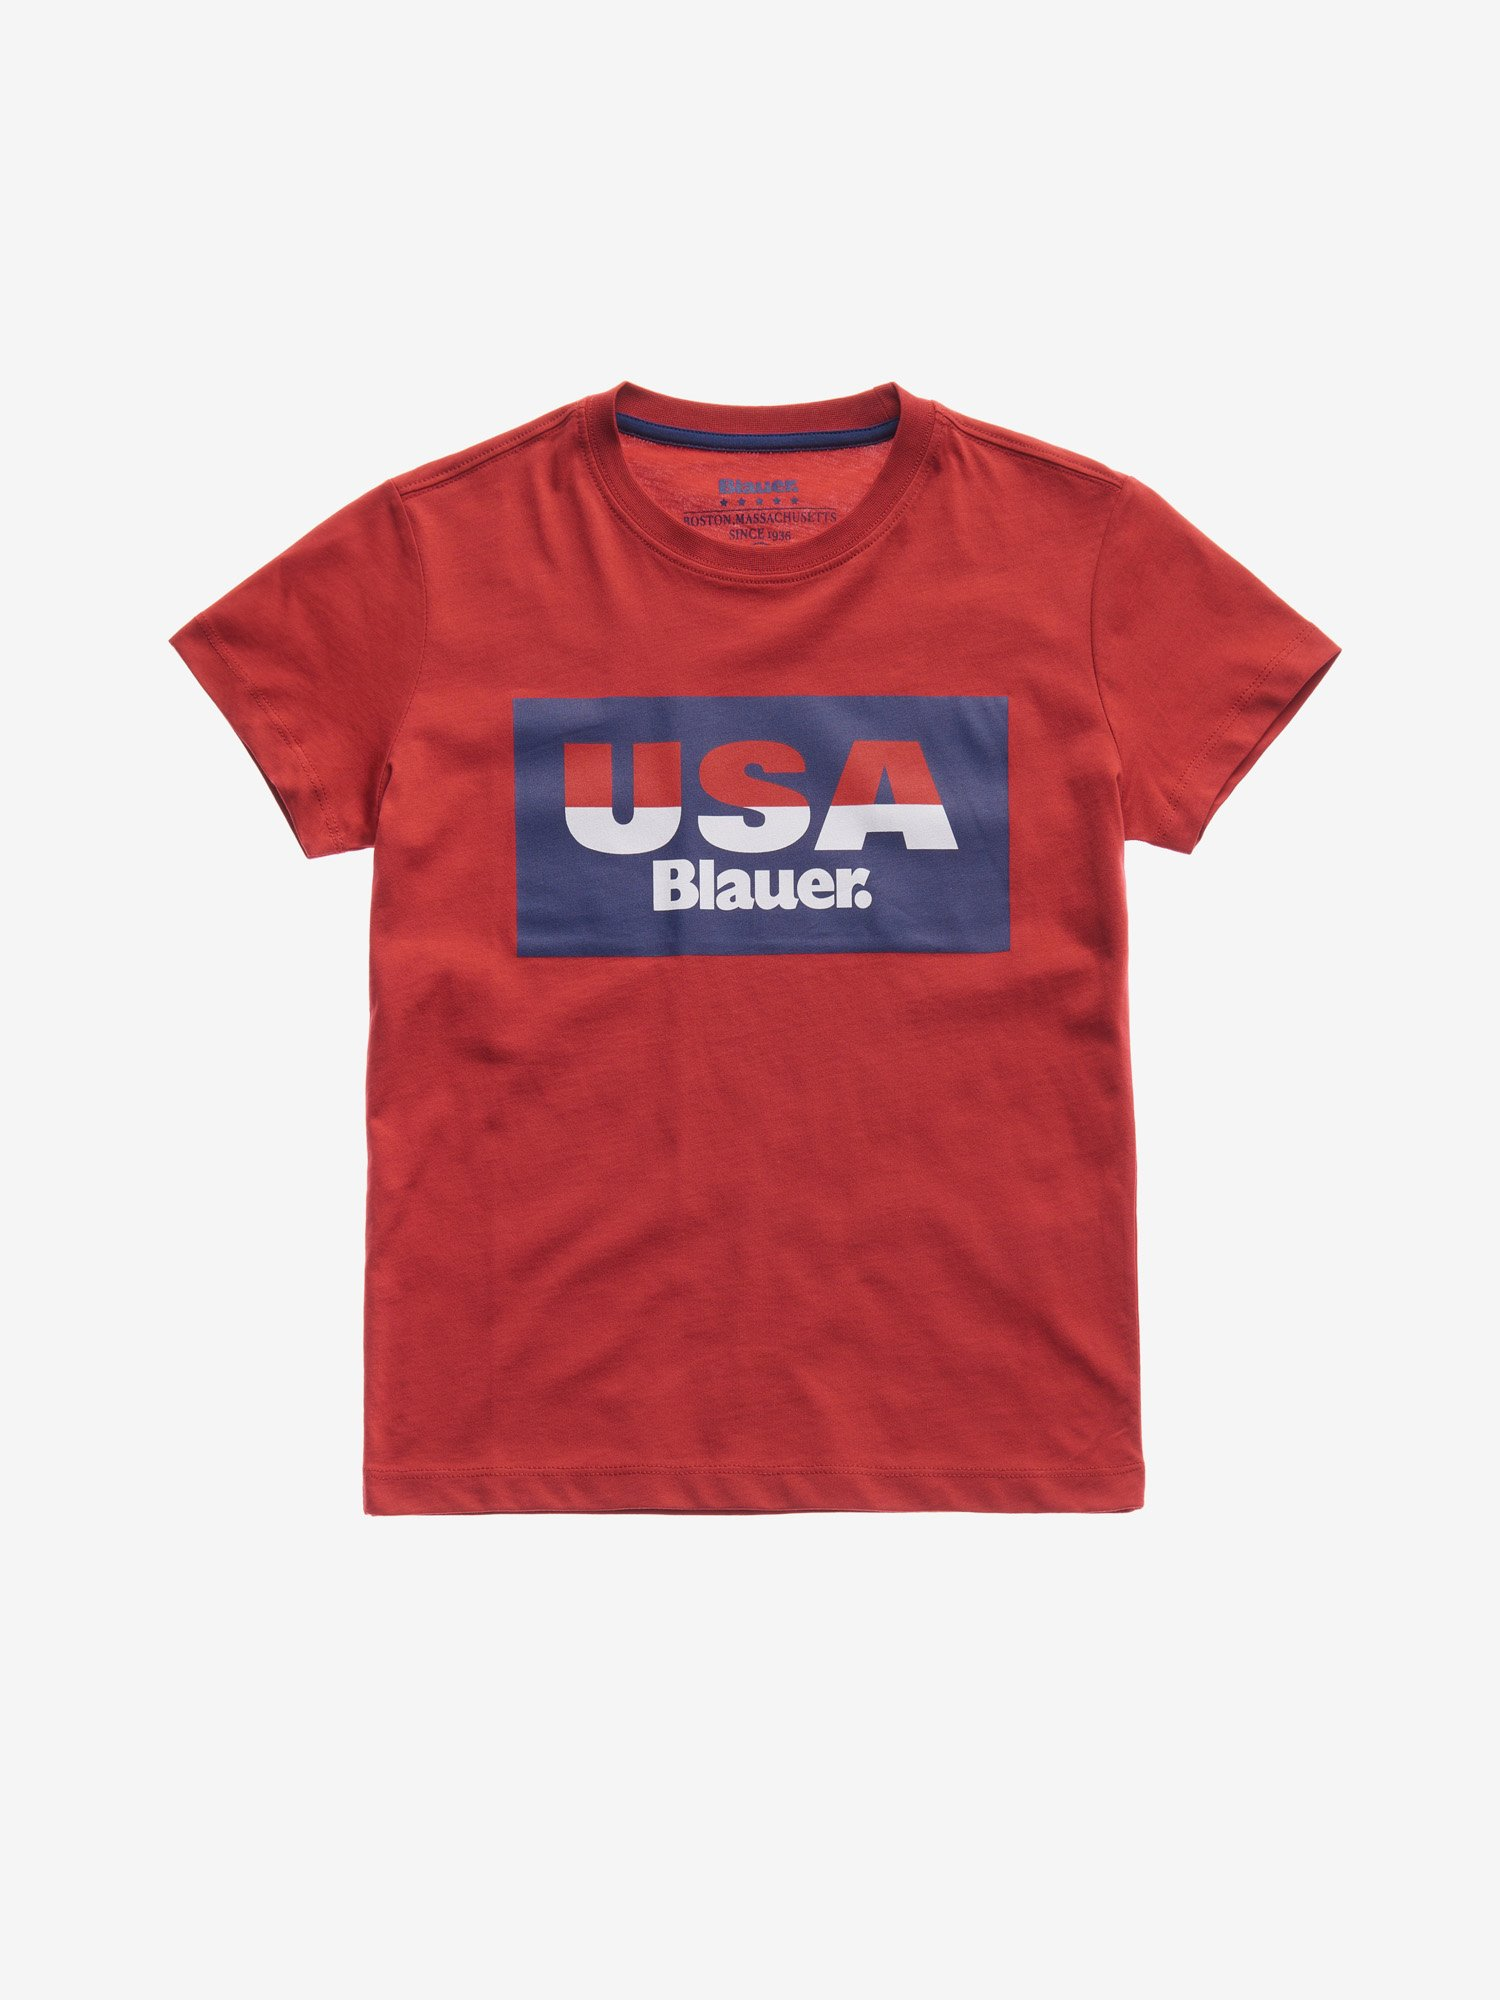 JUNIOR BLAUER USA T-SHIRT - Blauer